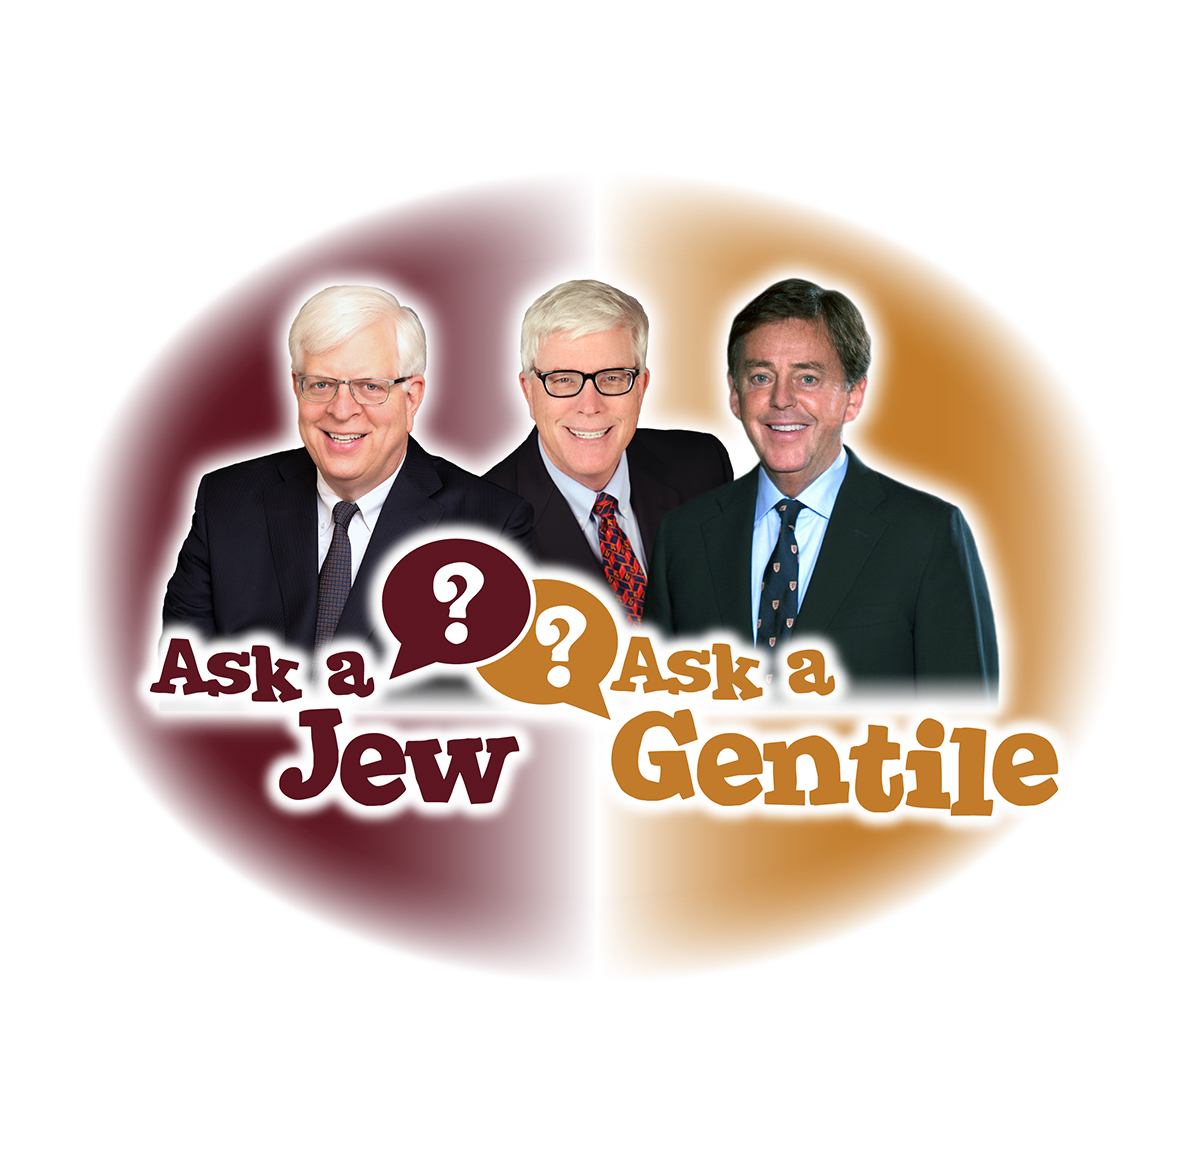 Event - AM870 The Answer Presents: Ask a Jew. Ask a Gentile 2019